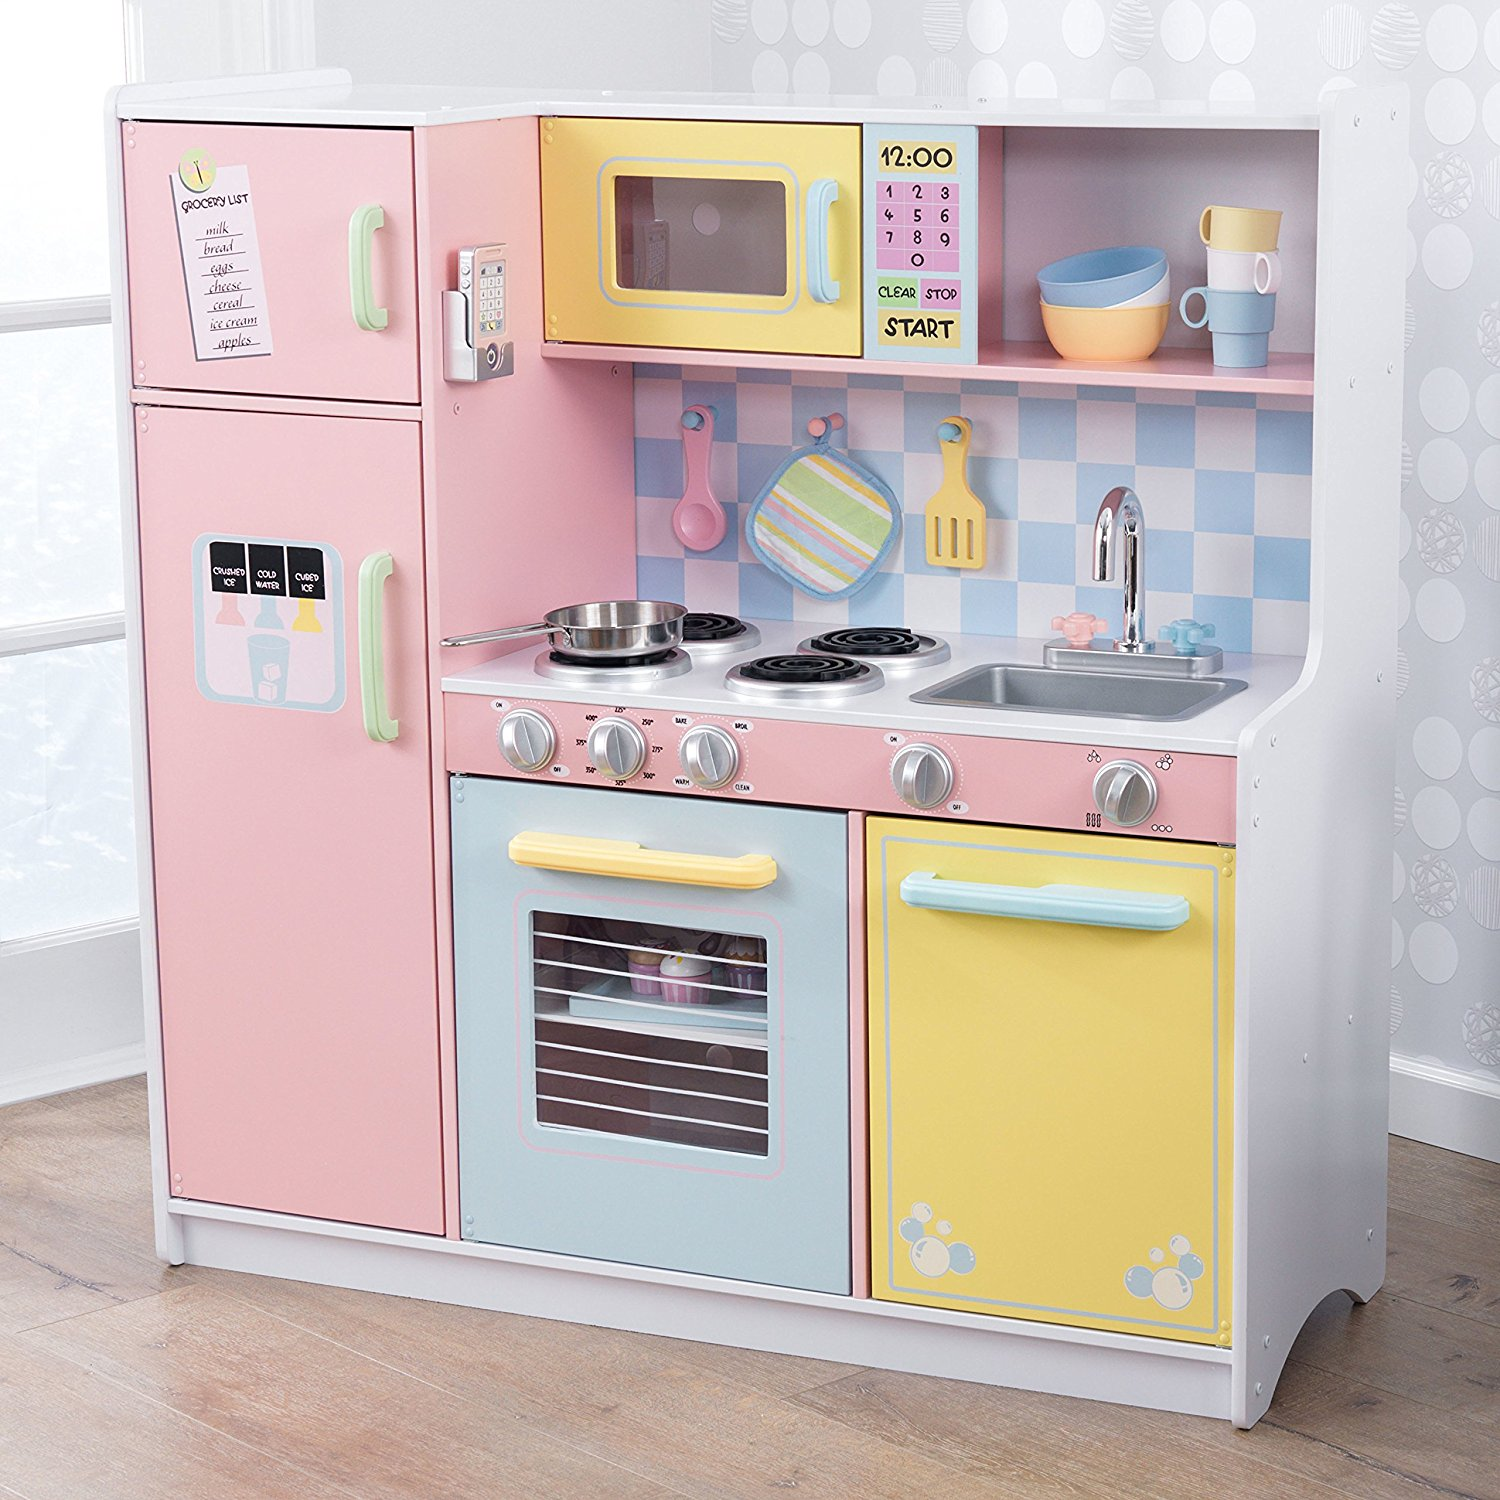 play kitchen - Children love playing with food and the kitchen provides so many language opportunities and this is a toy that will last a long time. There are so many vocabulary words you can teach them, play food is way more motivating than flashcards, and I like ntroduce descriptive vocabulary as I talk about all the ingredients. Kids love to pretend to cook and its very motivating. They get a chance to observe, demonstrate, and use action words such as stir, mix, cut, and roll. You can also play with another child to practice social interactions. Here are some links to play food and pots/pans that we love!